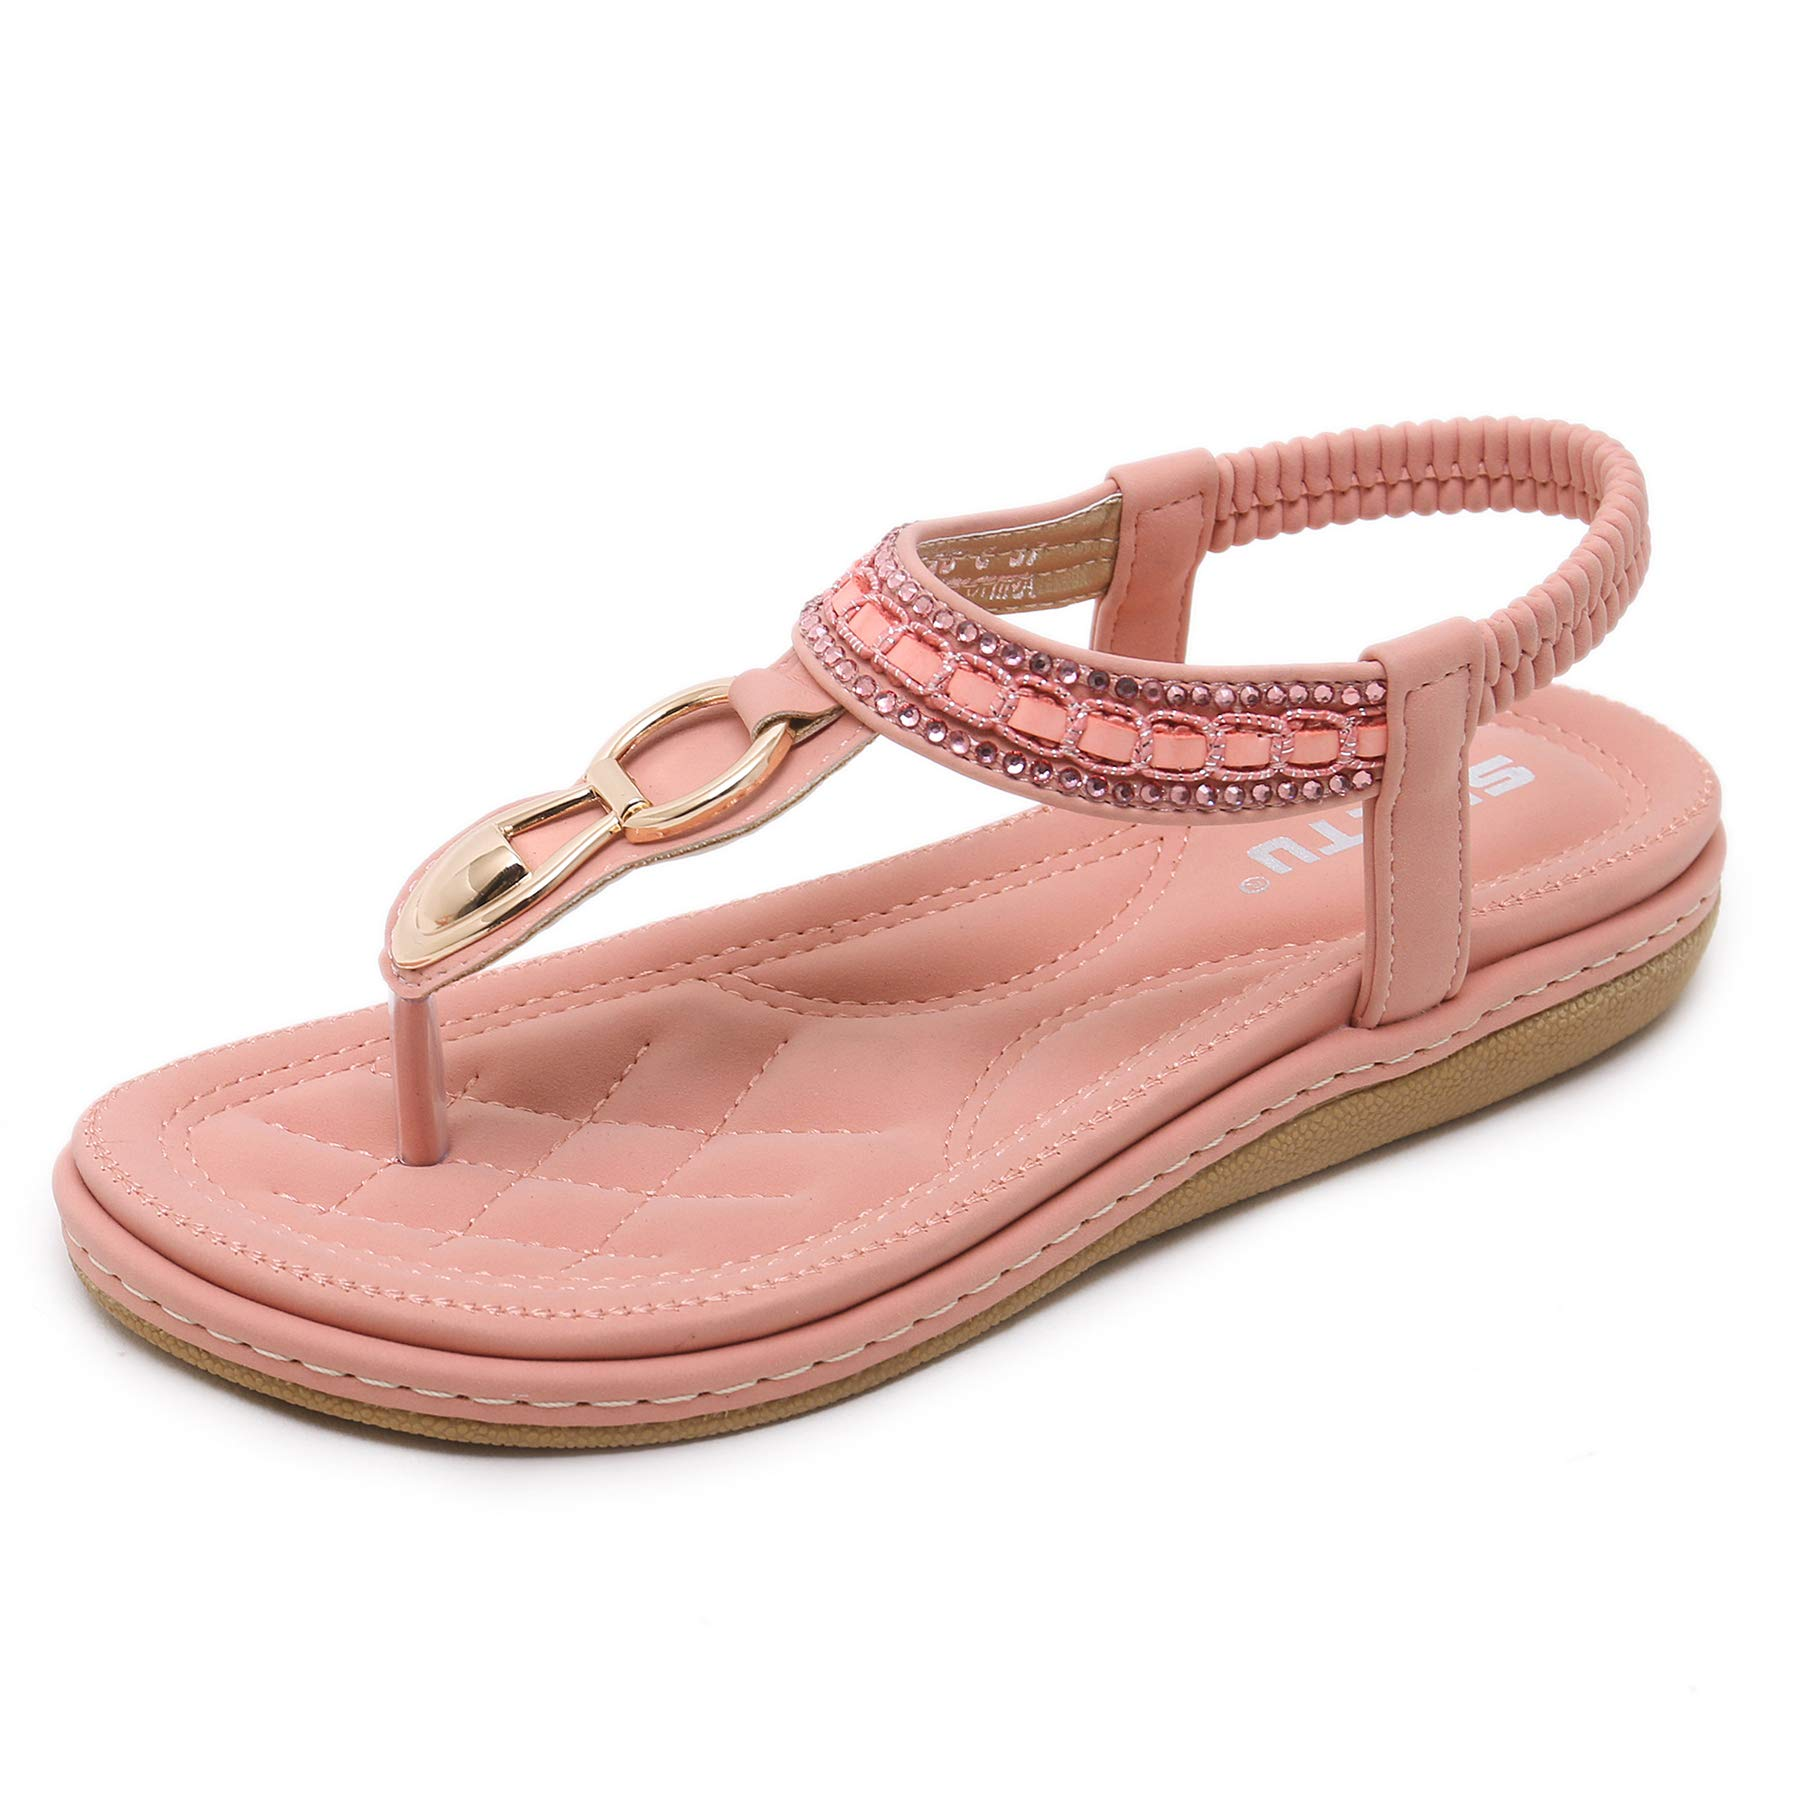 Women Summer Bohemian Flat Thong Sandals, Pink T Strap Flip Flops Glitter Rhinestone Shiny Golden Metal Shoes for Dressy Casual Jeans Daily Wear and Beach Vacation, Back to School Vintage Party